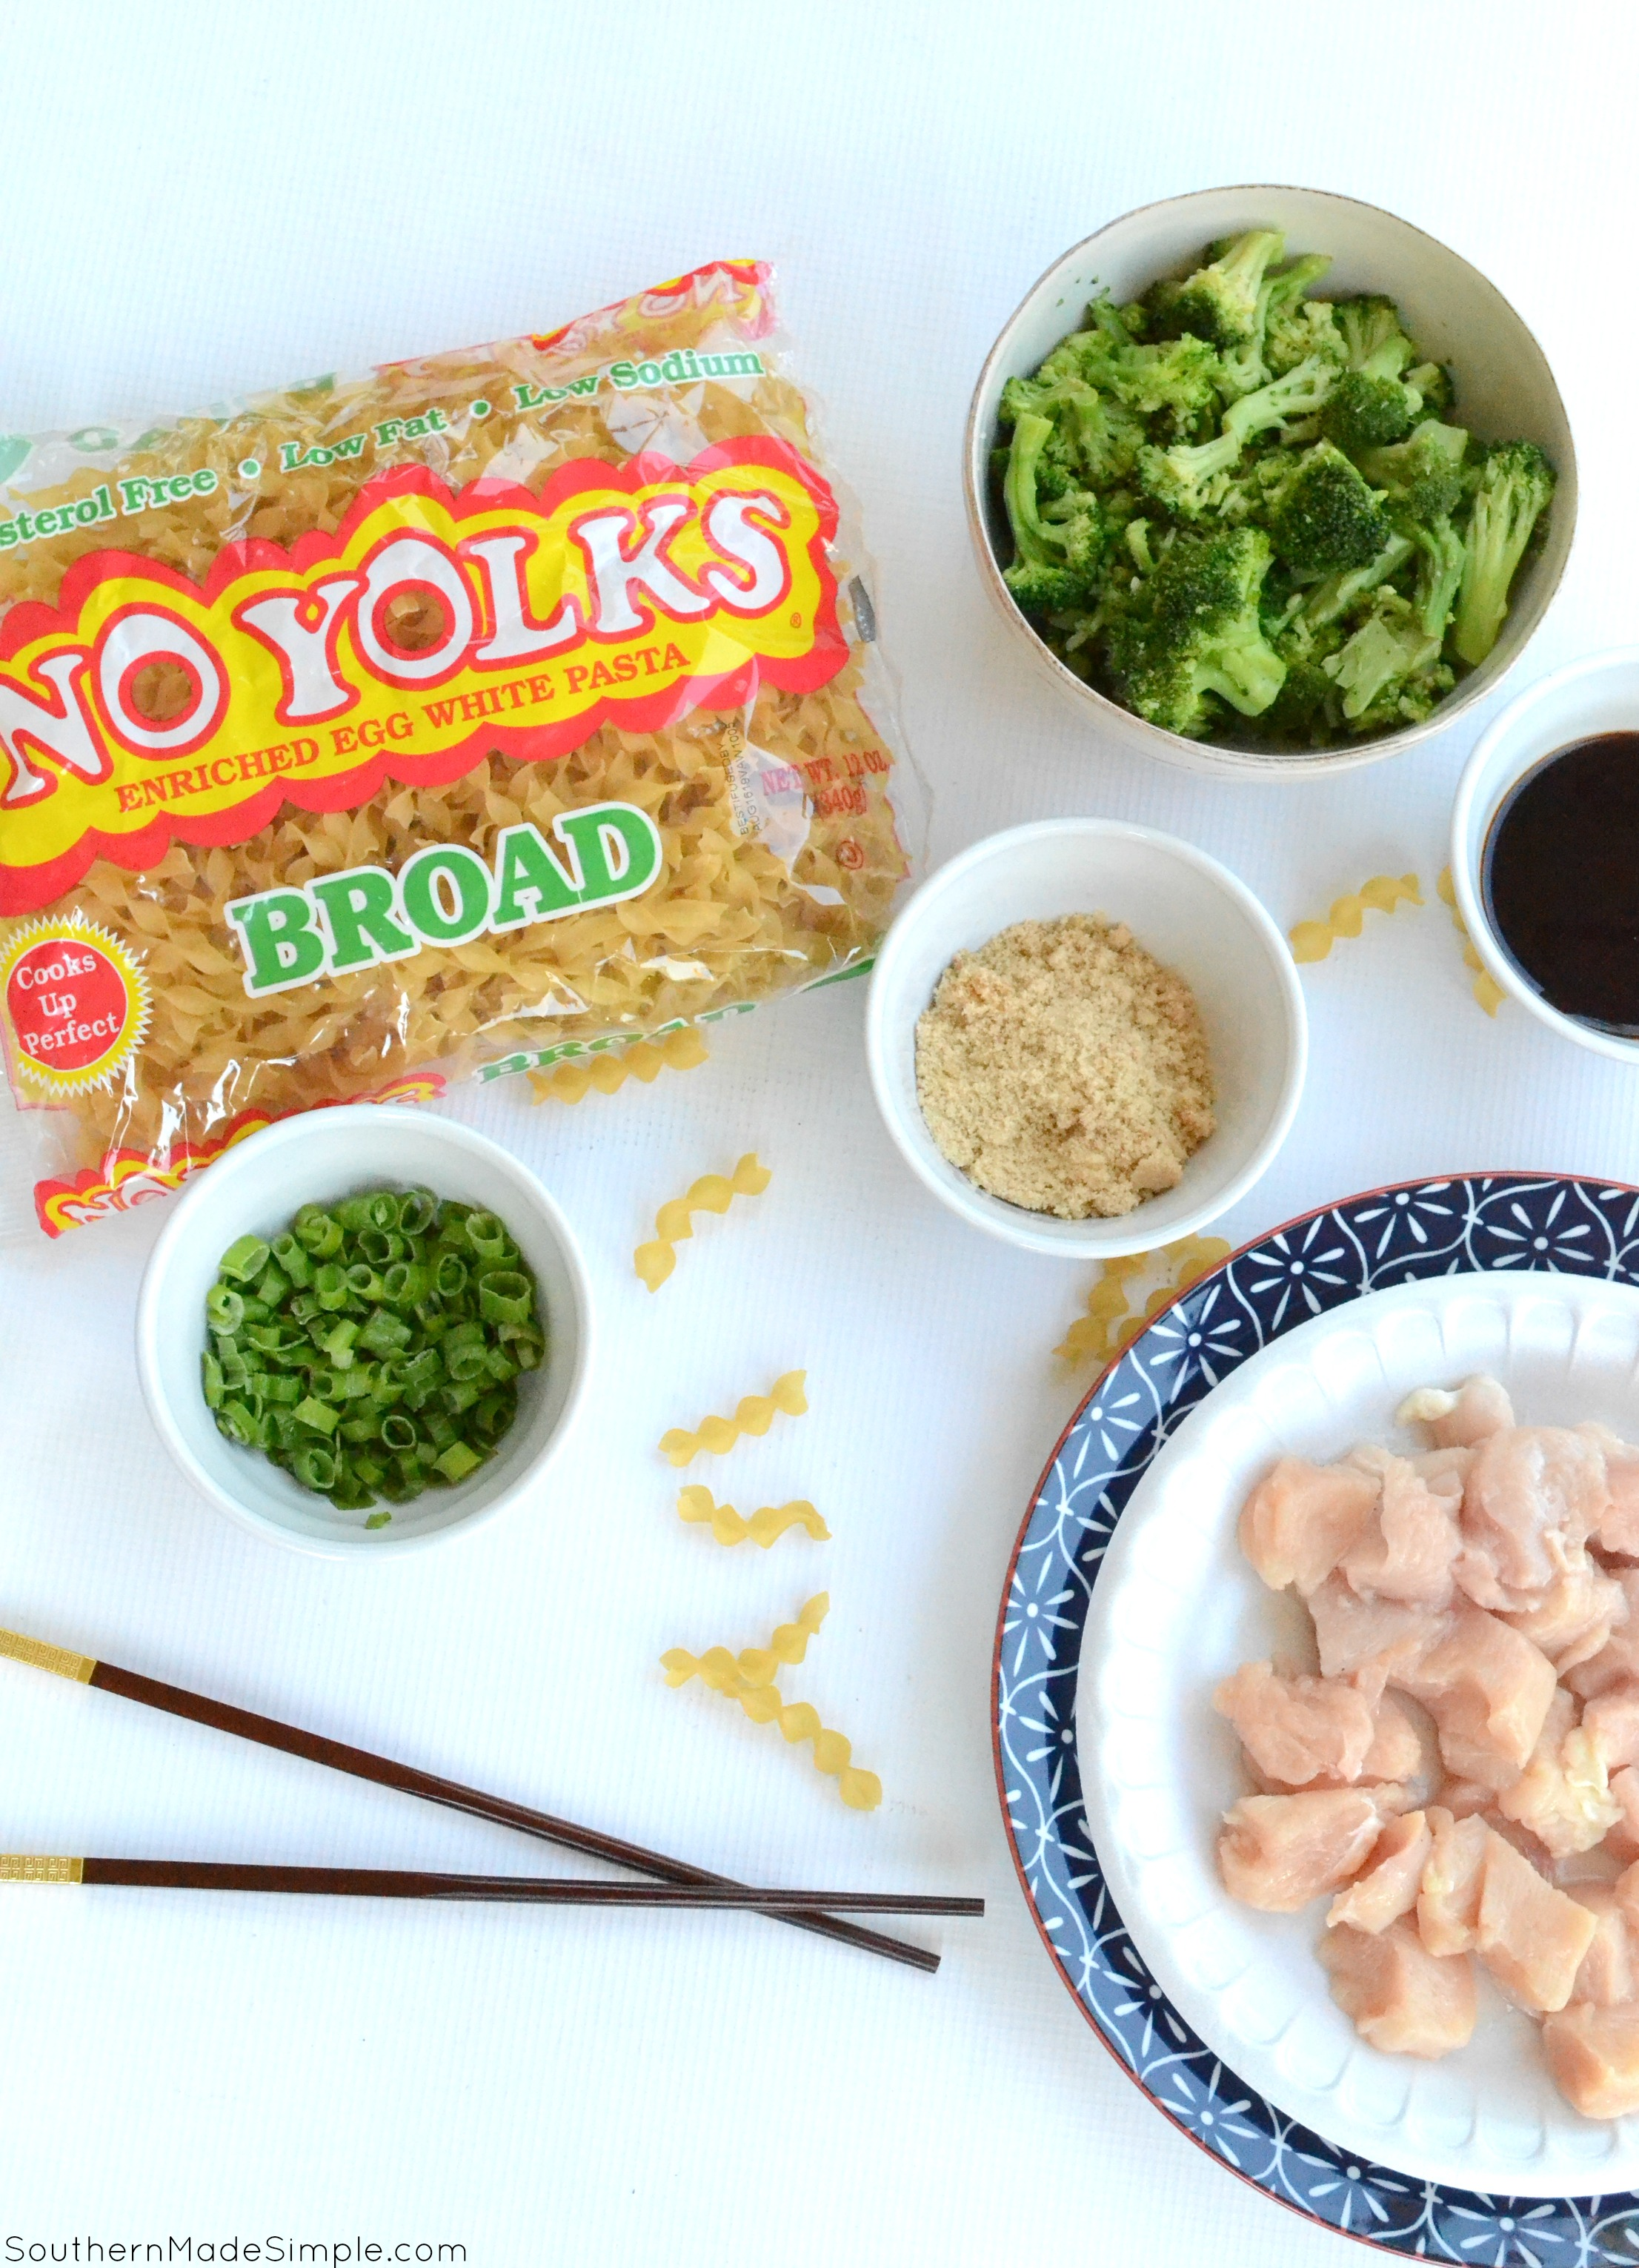 These quick-fix chicken teriyaki bowls are the perfect weeknight meal to satisfy your chinese food takeout craving, but taste WAY better AND are made with delicious No Yolk noodles! #NoYolks #IC #NoOtherNoodle #ad